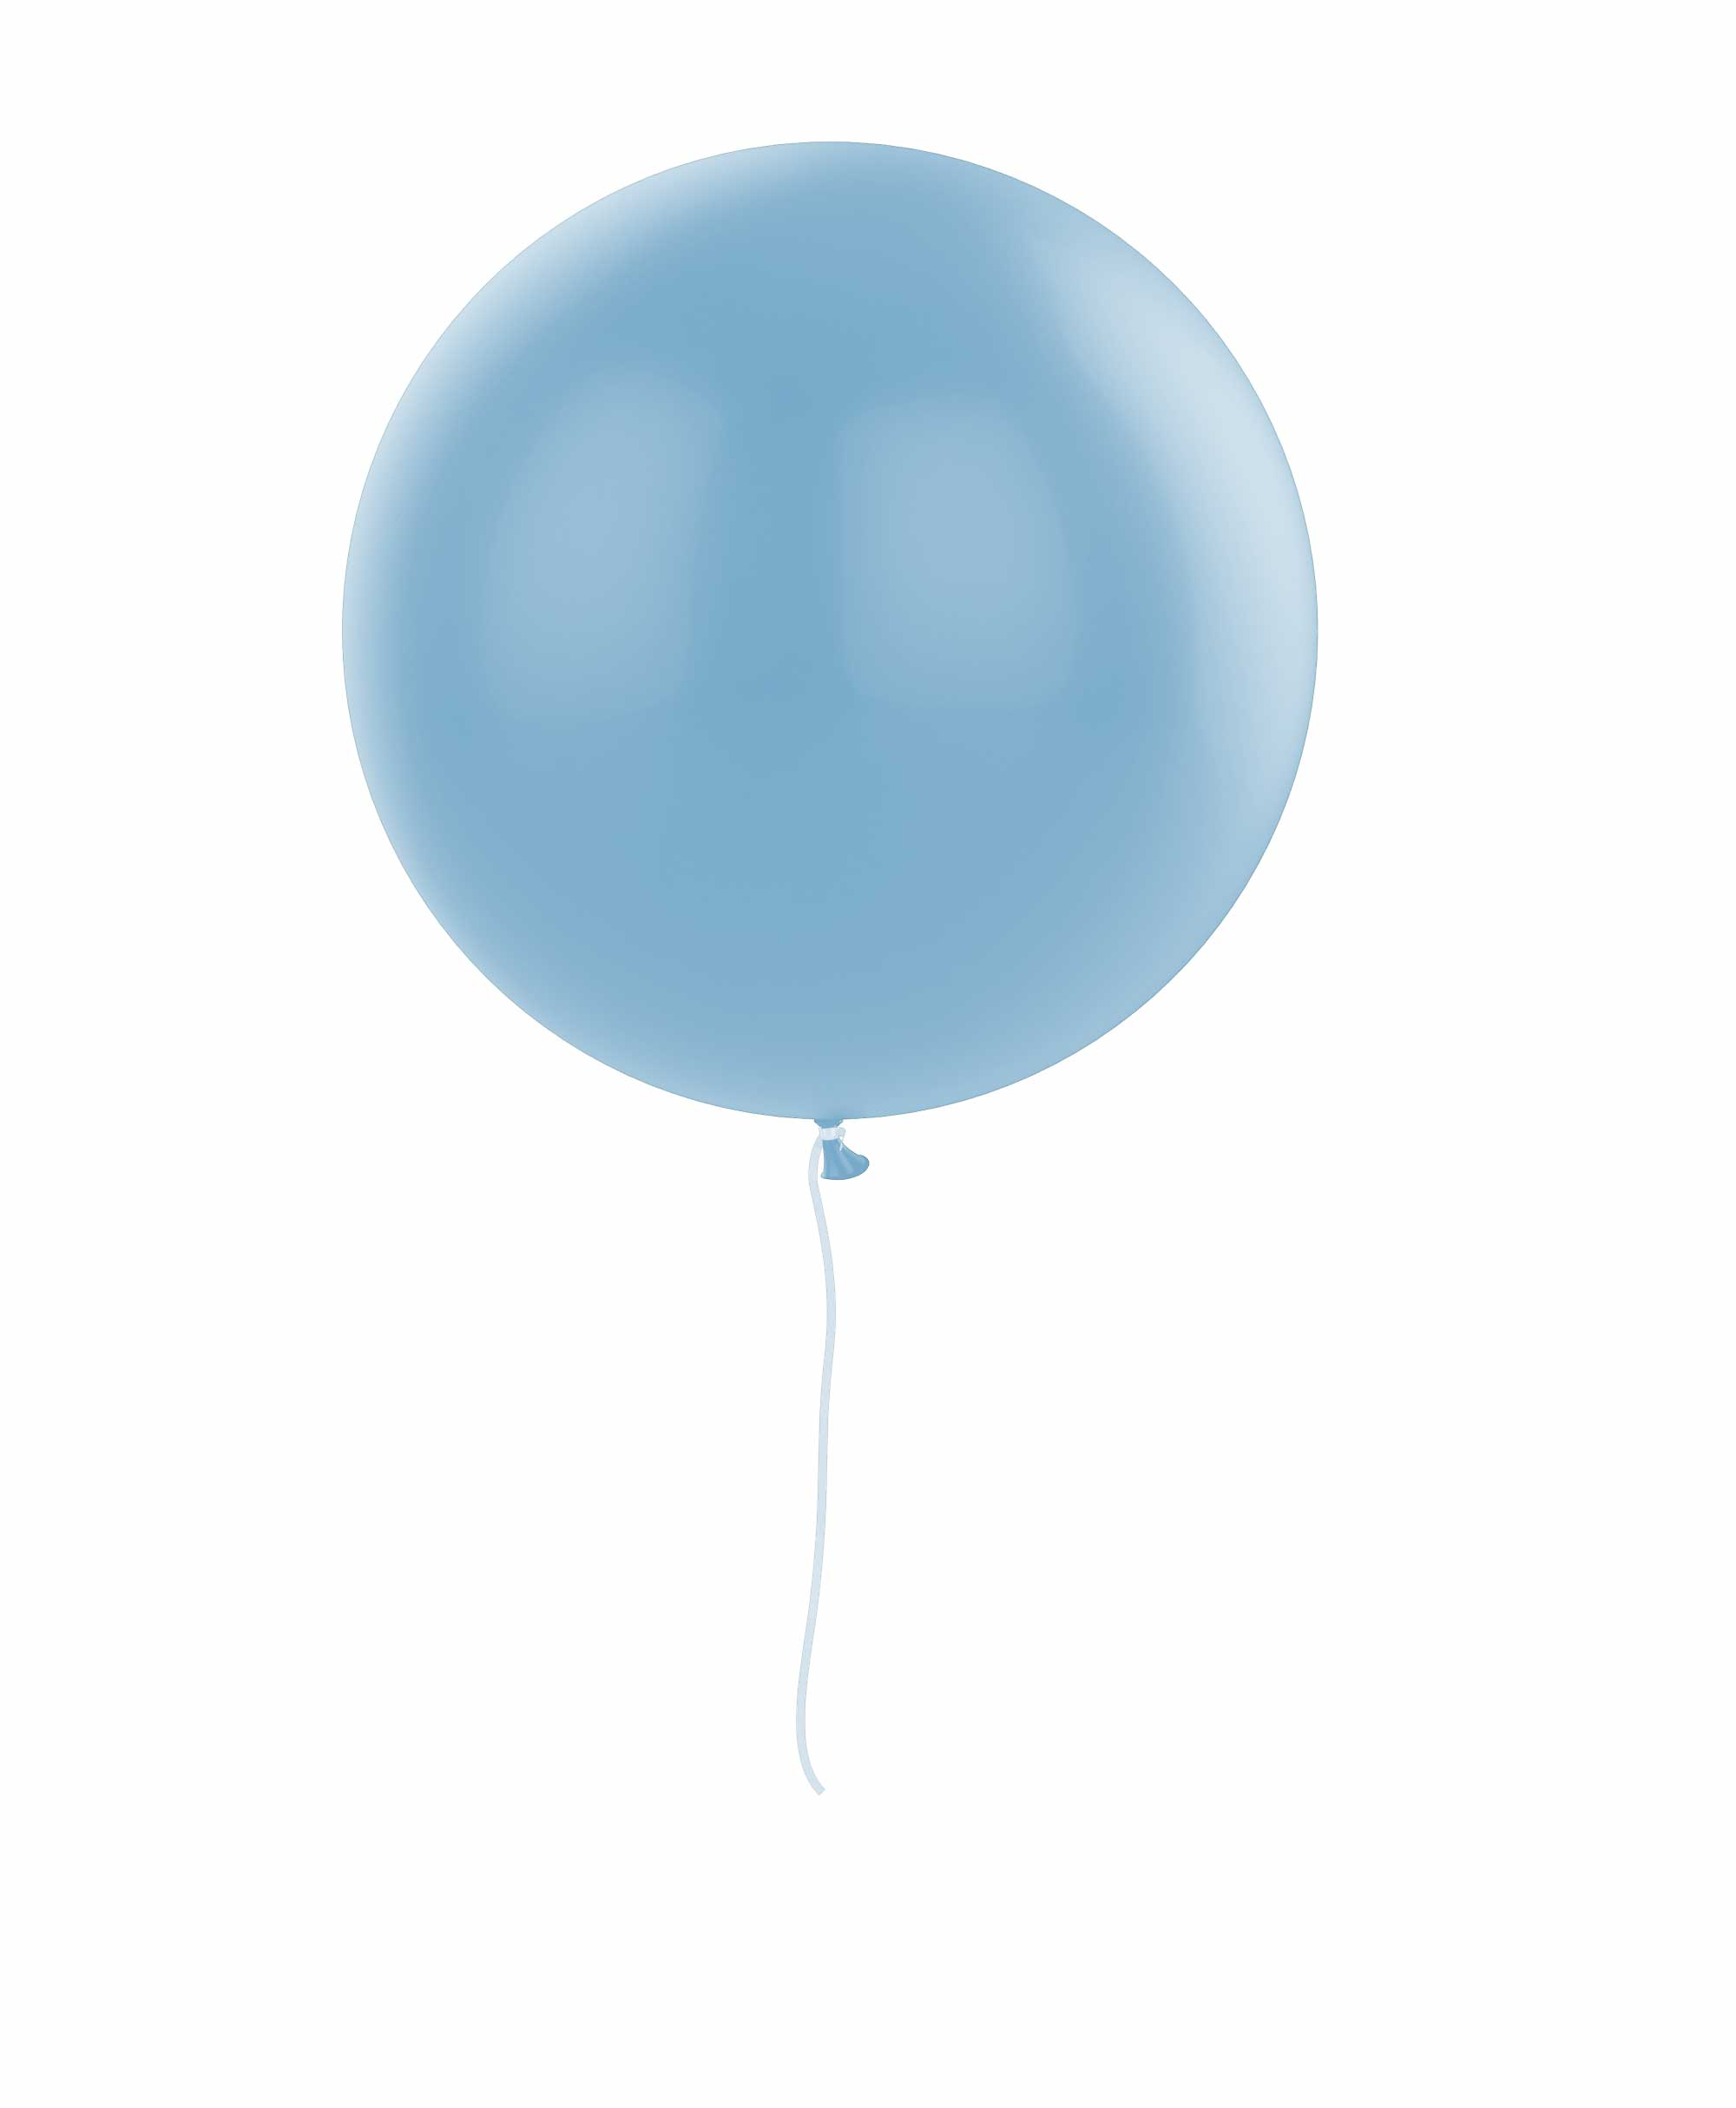 "Light blue balloon 36"" - Sky Theme"